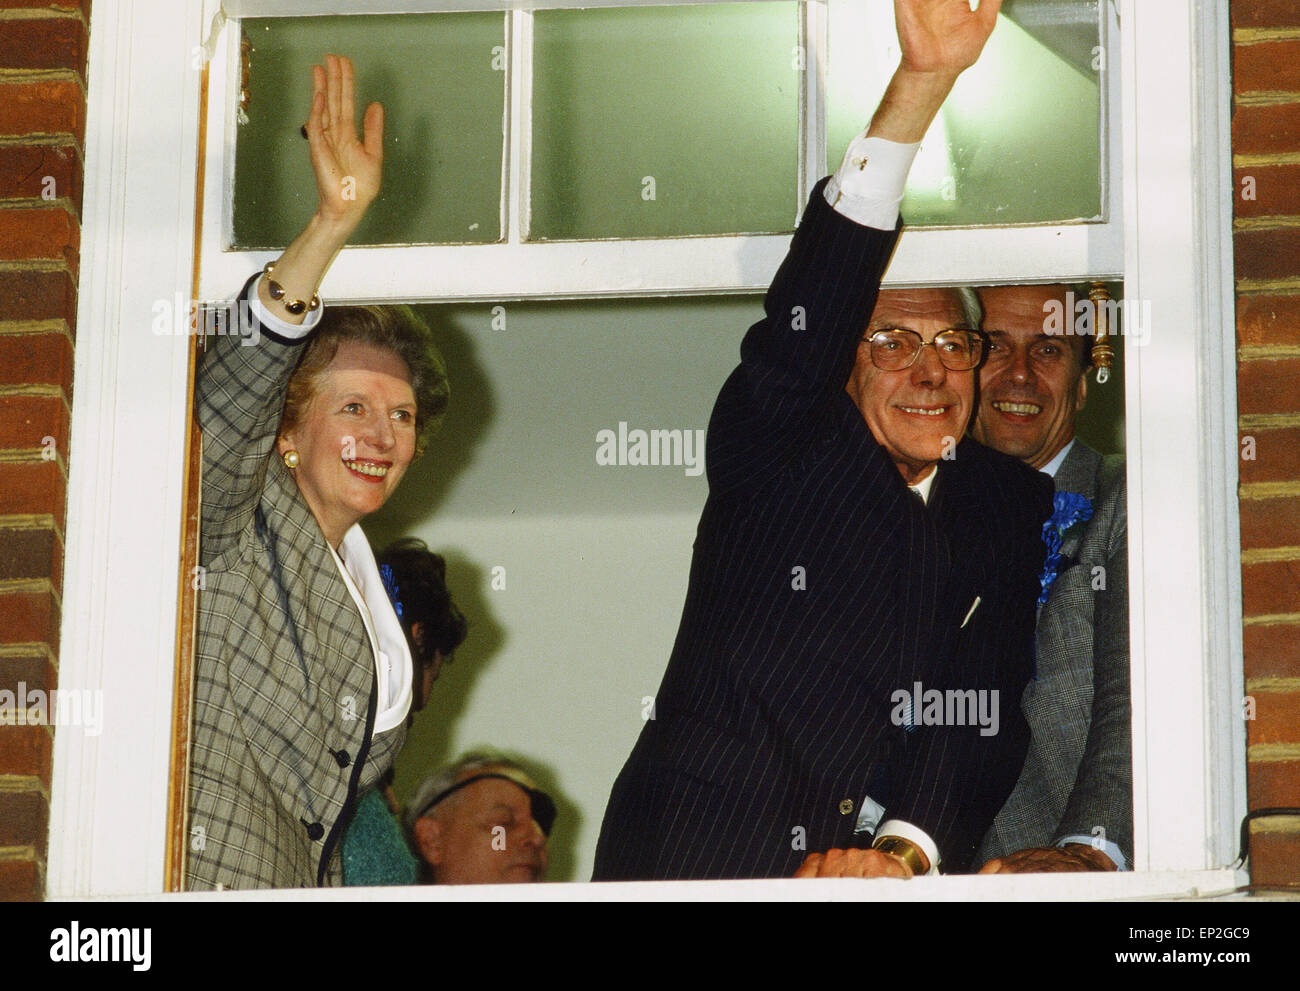 Margaret Thatcher PM and husband Denis Thatcher celebrate after winning 1987 General Election, 10 Downing Street, Stock Photo